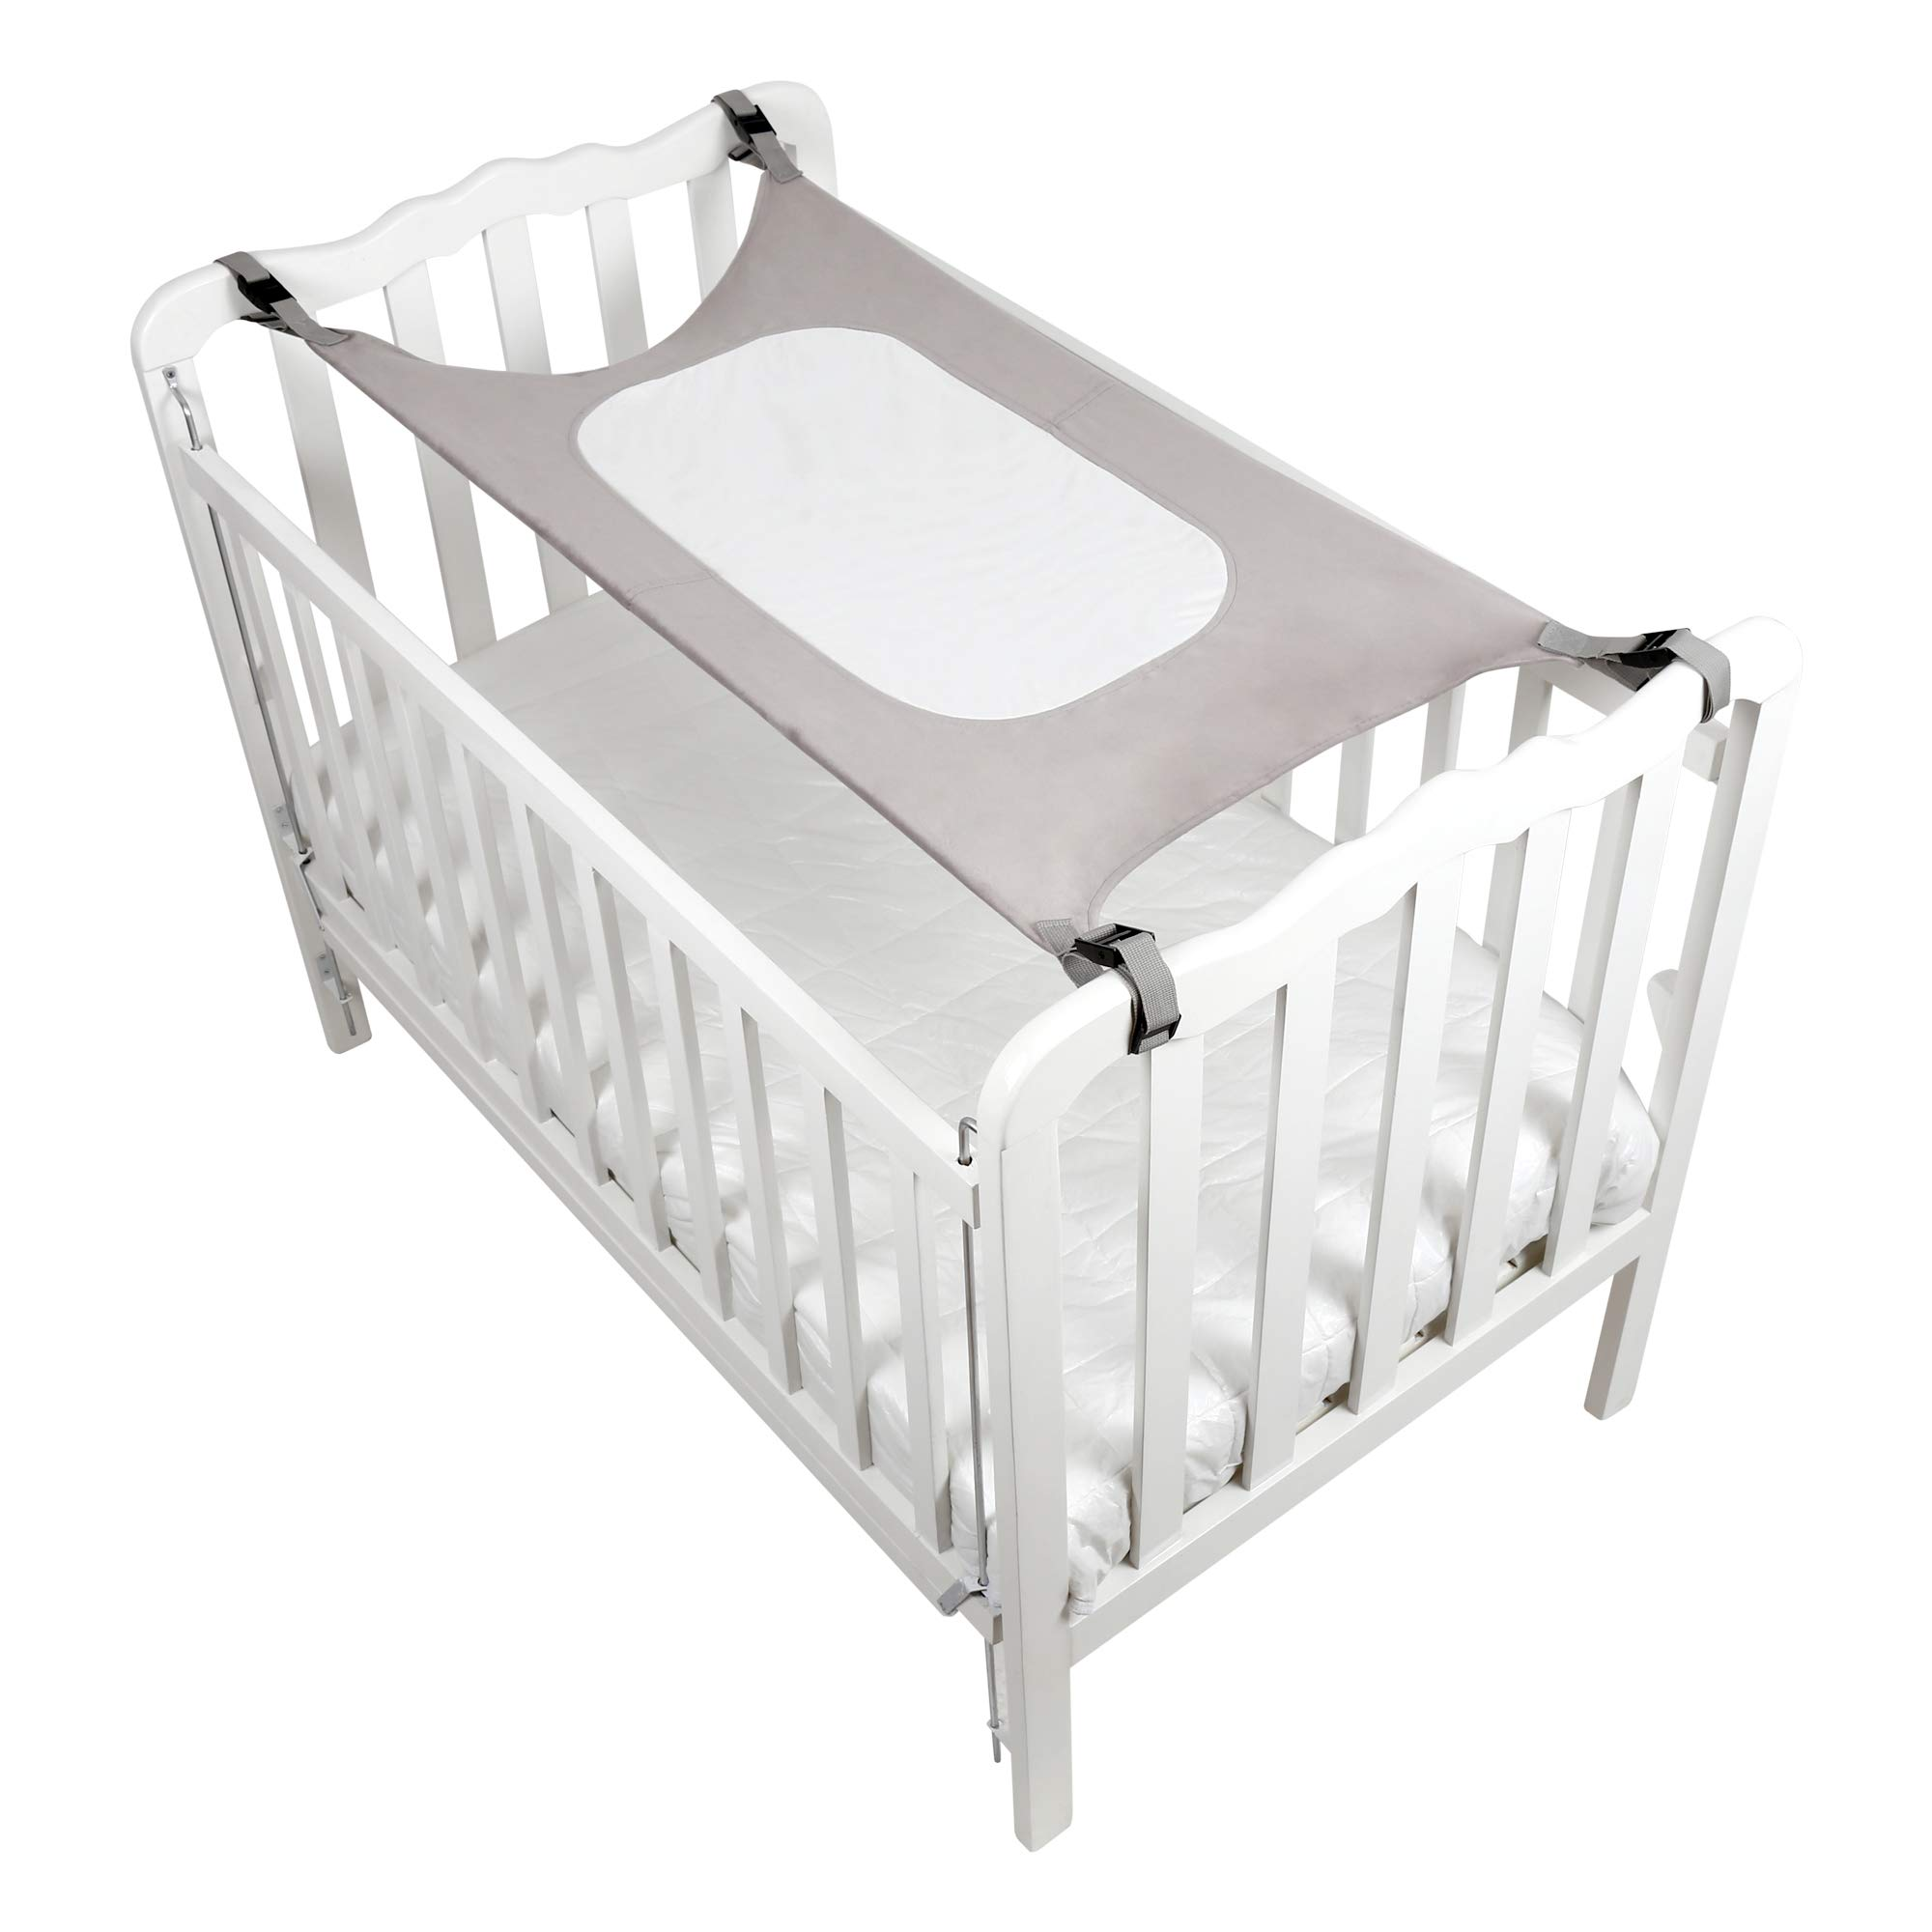 Baby Crib Hammock by Easy Gorilla - Newborn Bed Sleeping Essentials for Boys and Girls - Breathable and Portable - Infant Sleep Comfort Gifts for Indoor Cot - Cradle - Safety Mesh Nursery Nap Hammocks by EasyGorilla (Image #9)